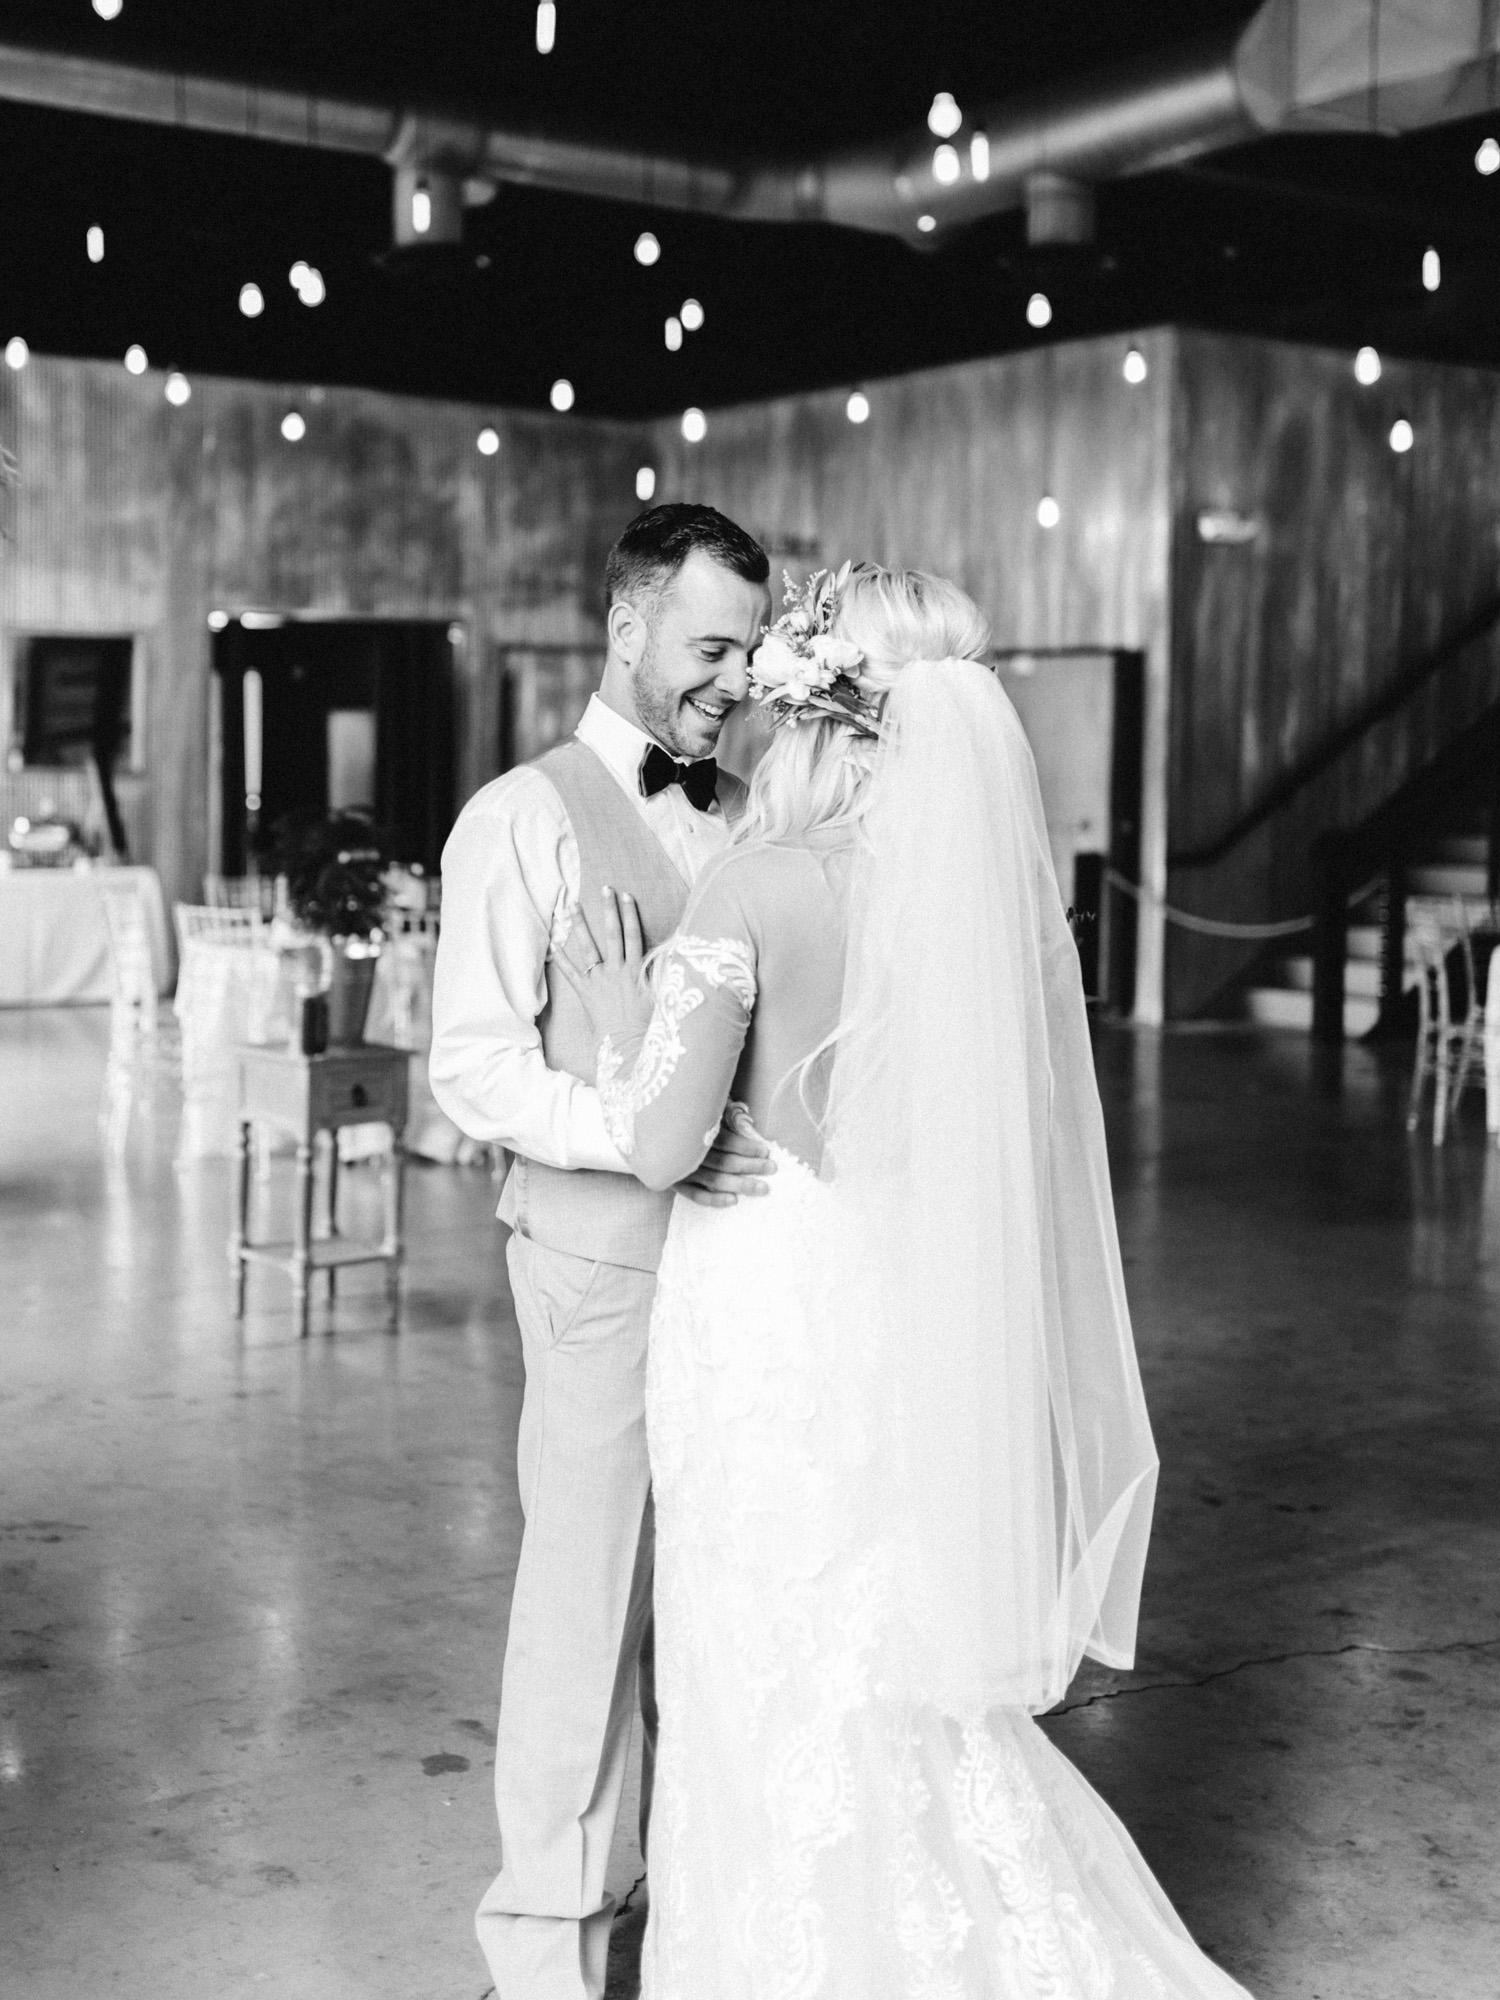 A smiling groom embraces his bride after seeing her for the first time during their first look at The Brick wedding venue